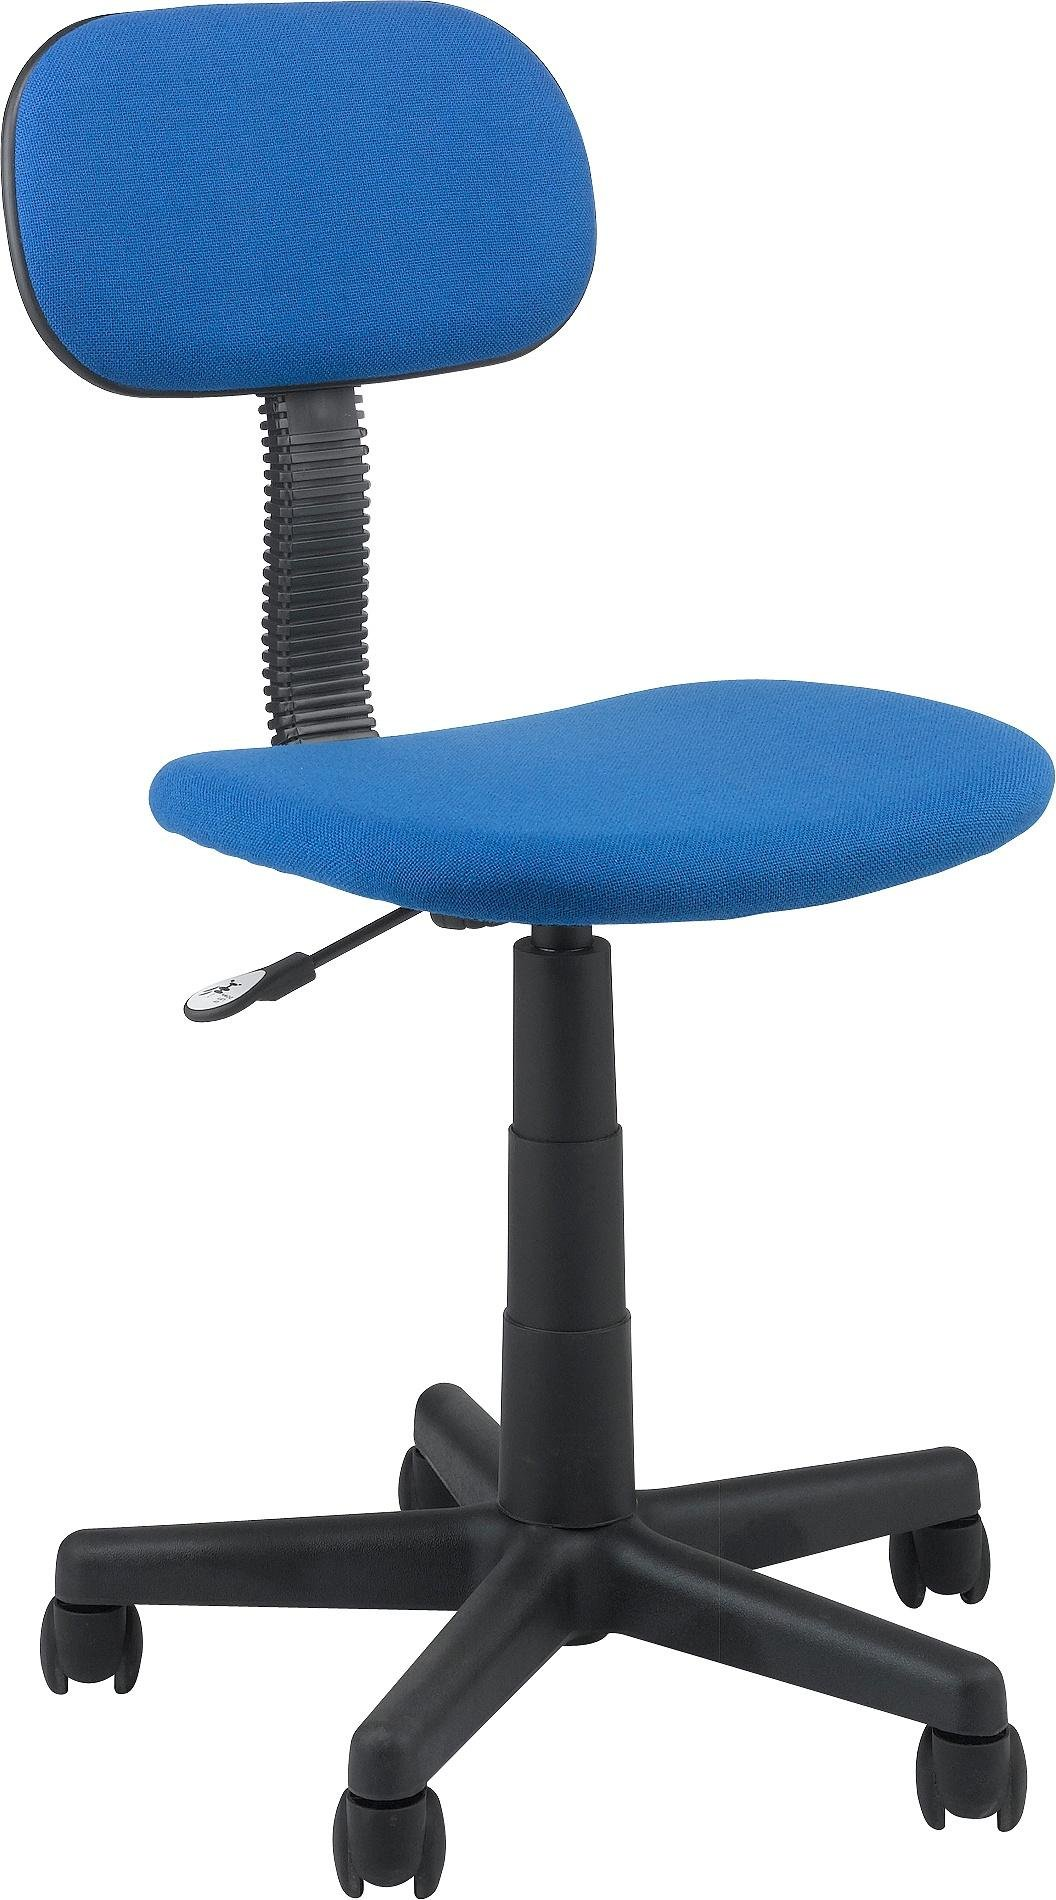 Gas lift height adjustable office chair blue617 3656